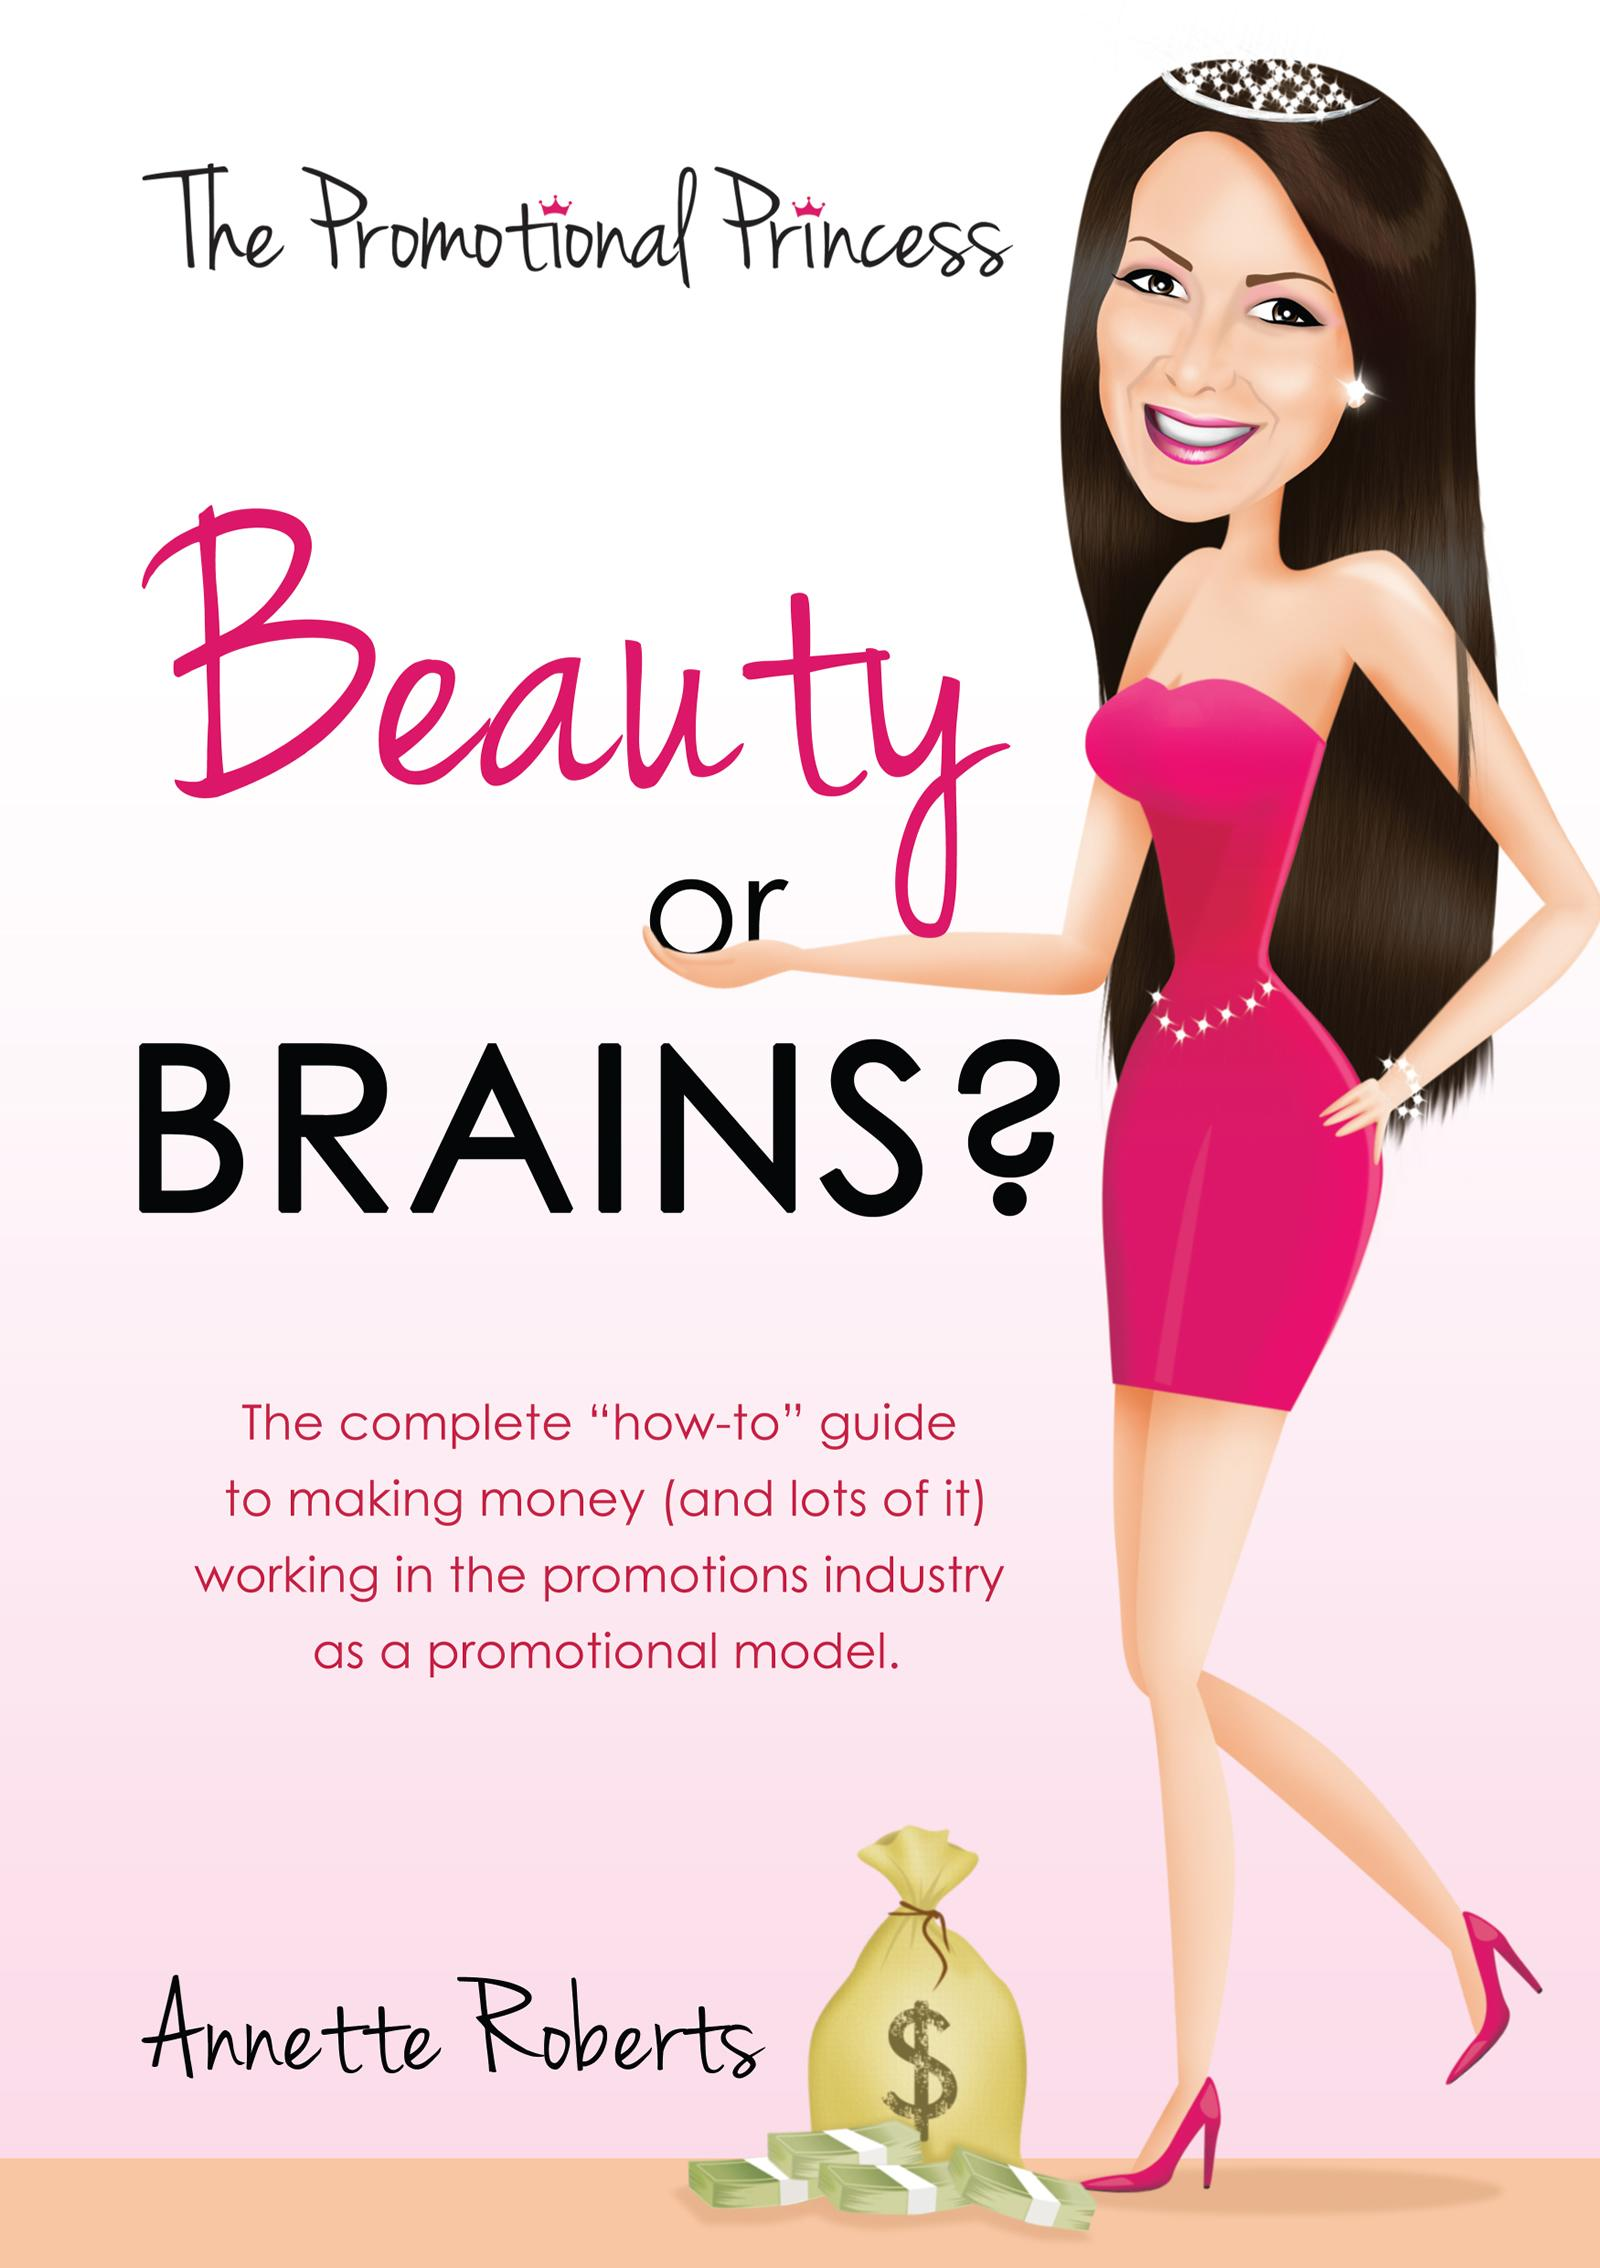 Beauty or Brains: Which One Are You?